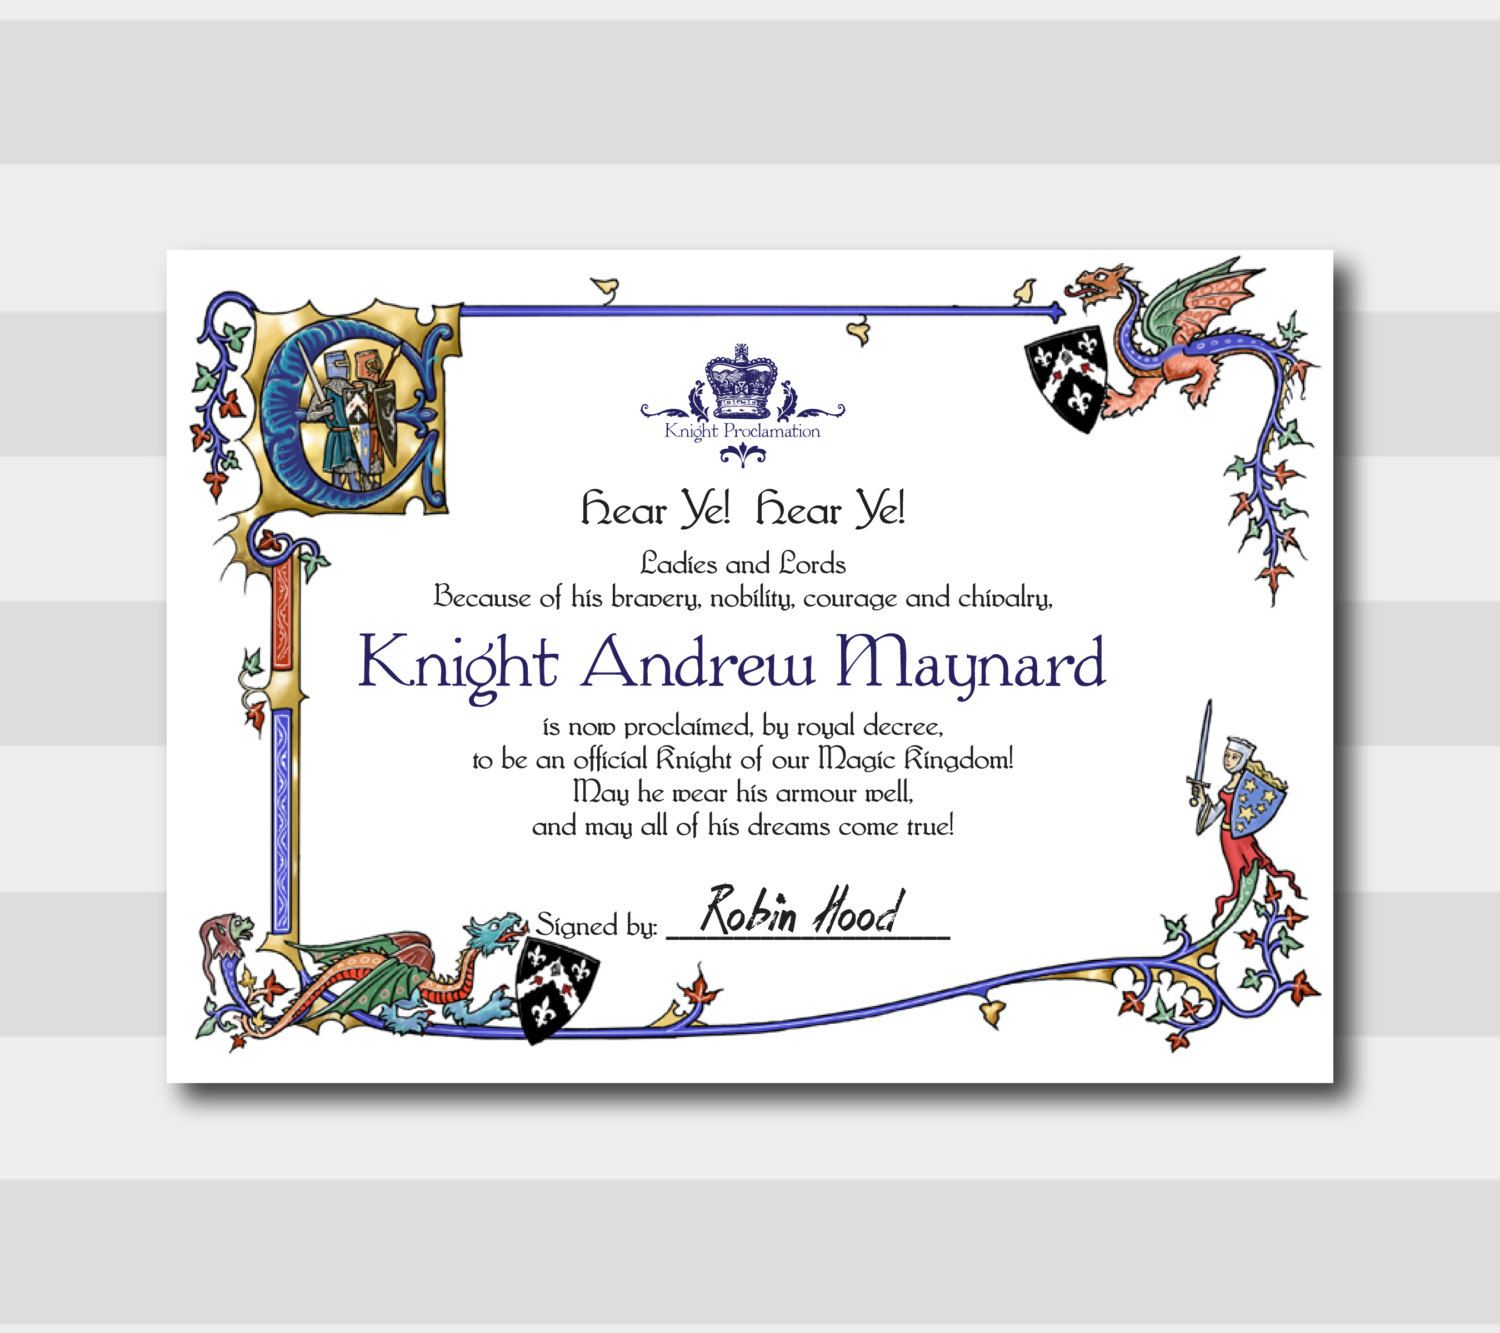 Custom knight proclamation printable 5x7 8x10 knight invitation custom printable knight proclamation 5x7 8x10 knight invitation party invitation knight certificate prince certificate prince by 105designhouse on yelopaper Images